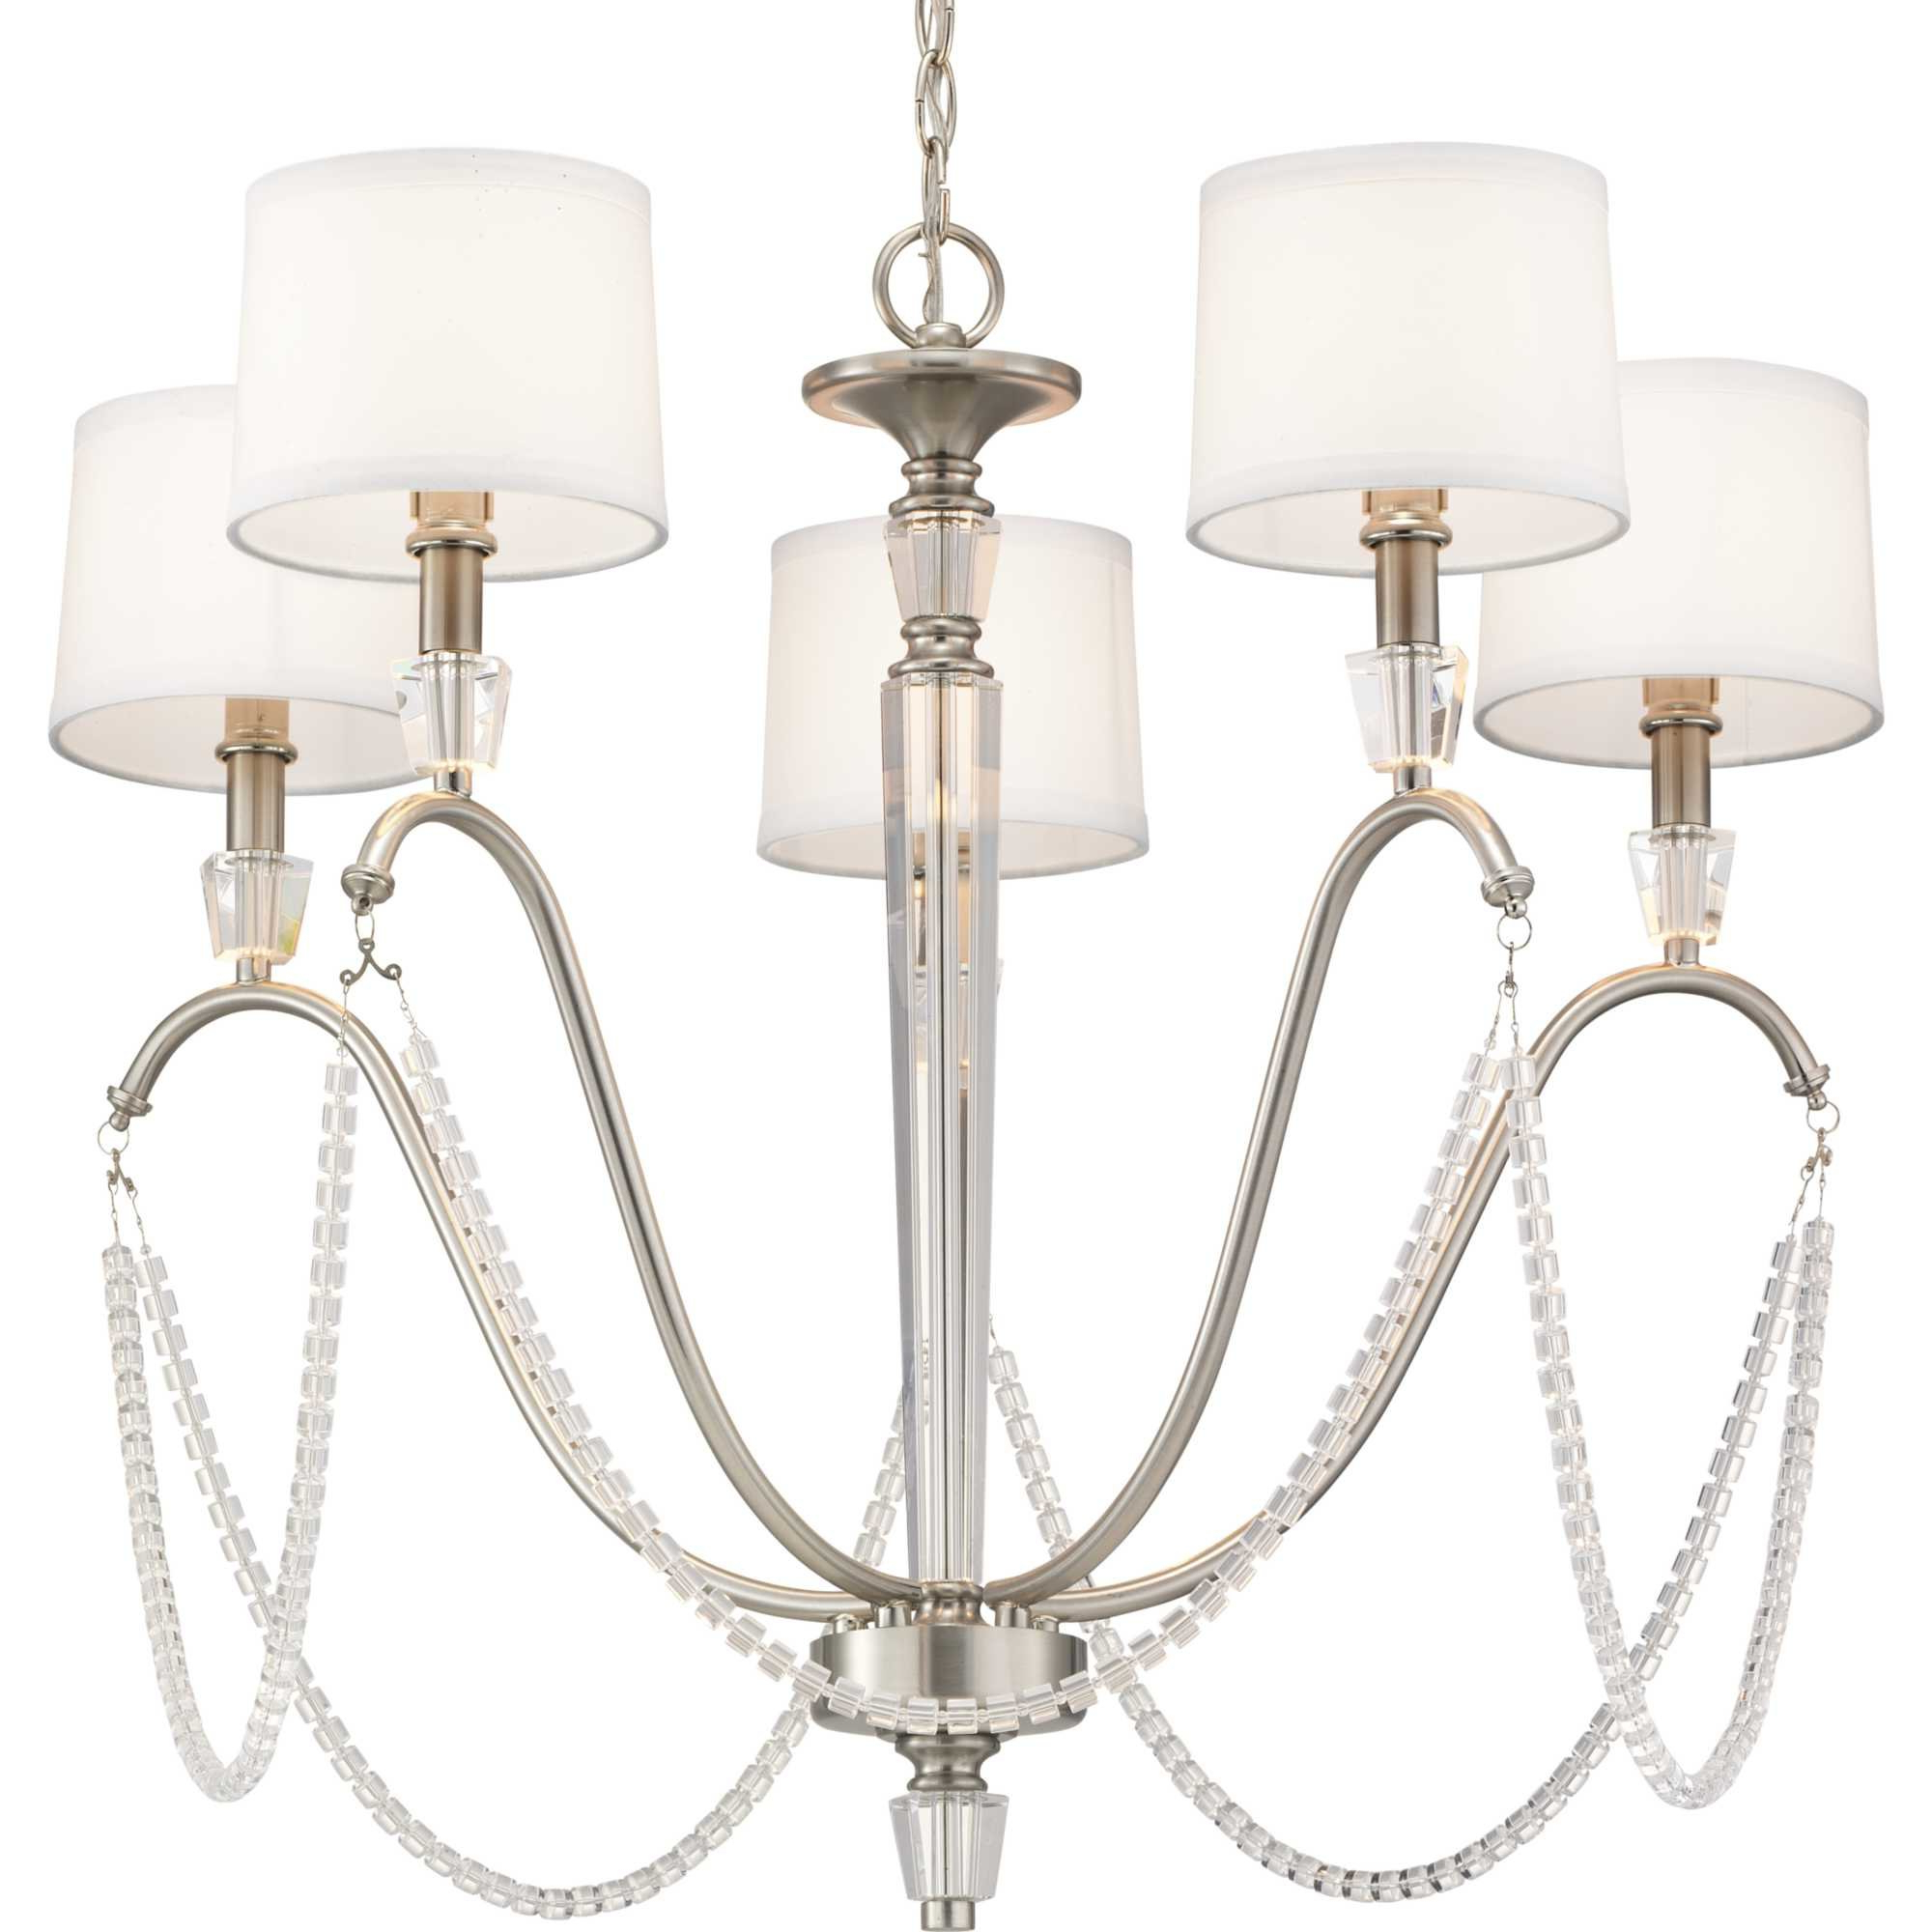 Lappin 5 Light Candle Style Chandelier Intended For Well Liked Florentina 5 Light Candle Style Chandeliers (View 11 of 20)